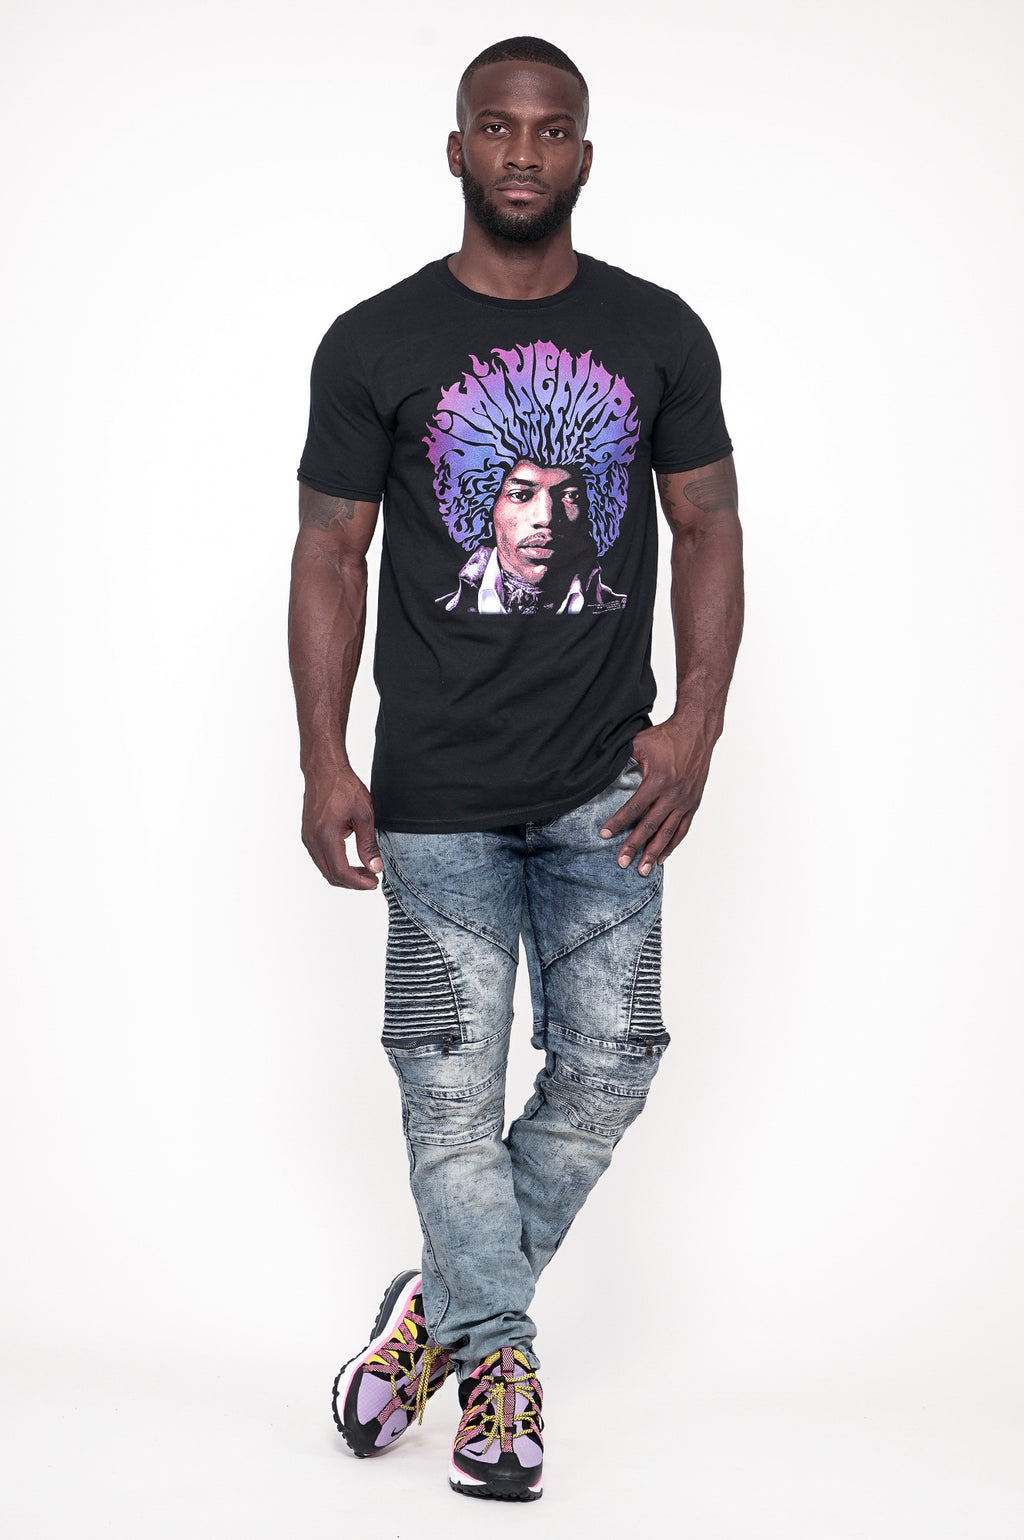 Aao Fashion Men Graphic Tee Jimi Hendrix